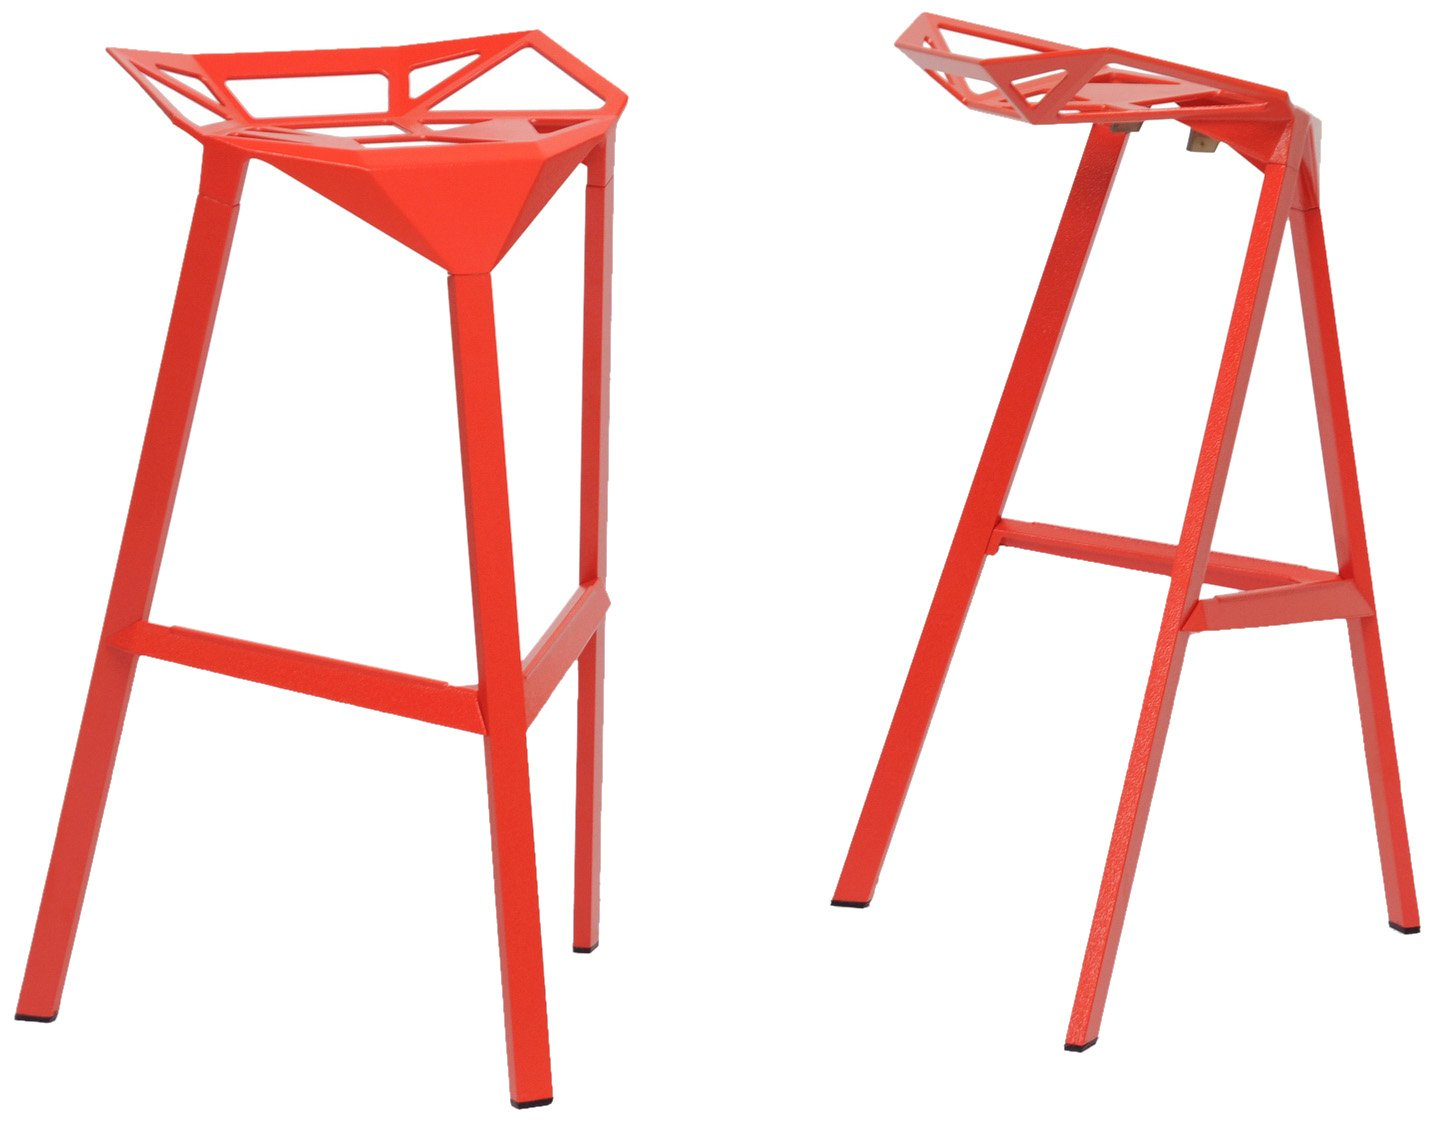 Amazon.com Baxton Studio Kaysa Aluminum Modern Bar Stool Red Set of 2 Kitchen u0026 Dining  sc 1 st  Amazon.com : red modern bar stools - islam-shia.org